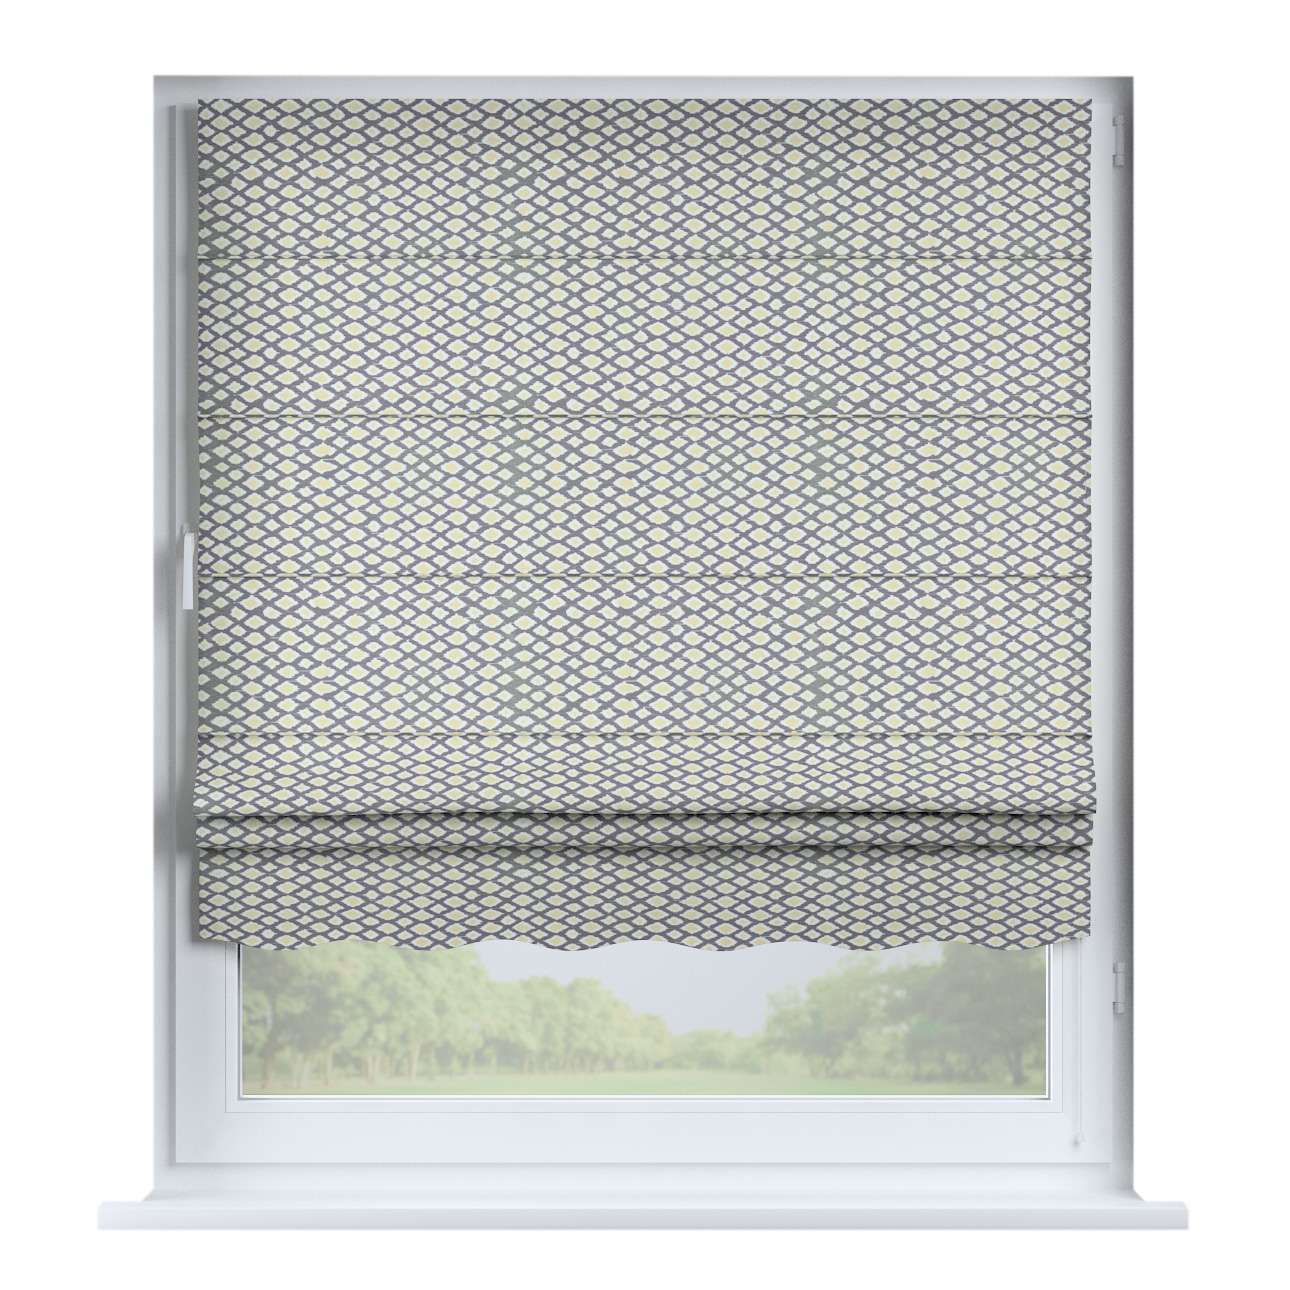 Florence roman blind  80 x 170 cm (31.5 x 67 inch) in collection Comic Book & Geo Prints, fabric: 141-21